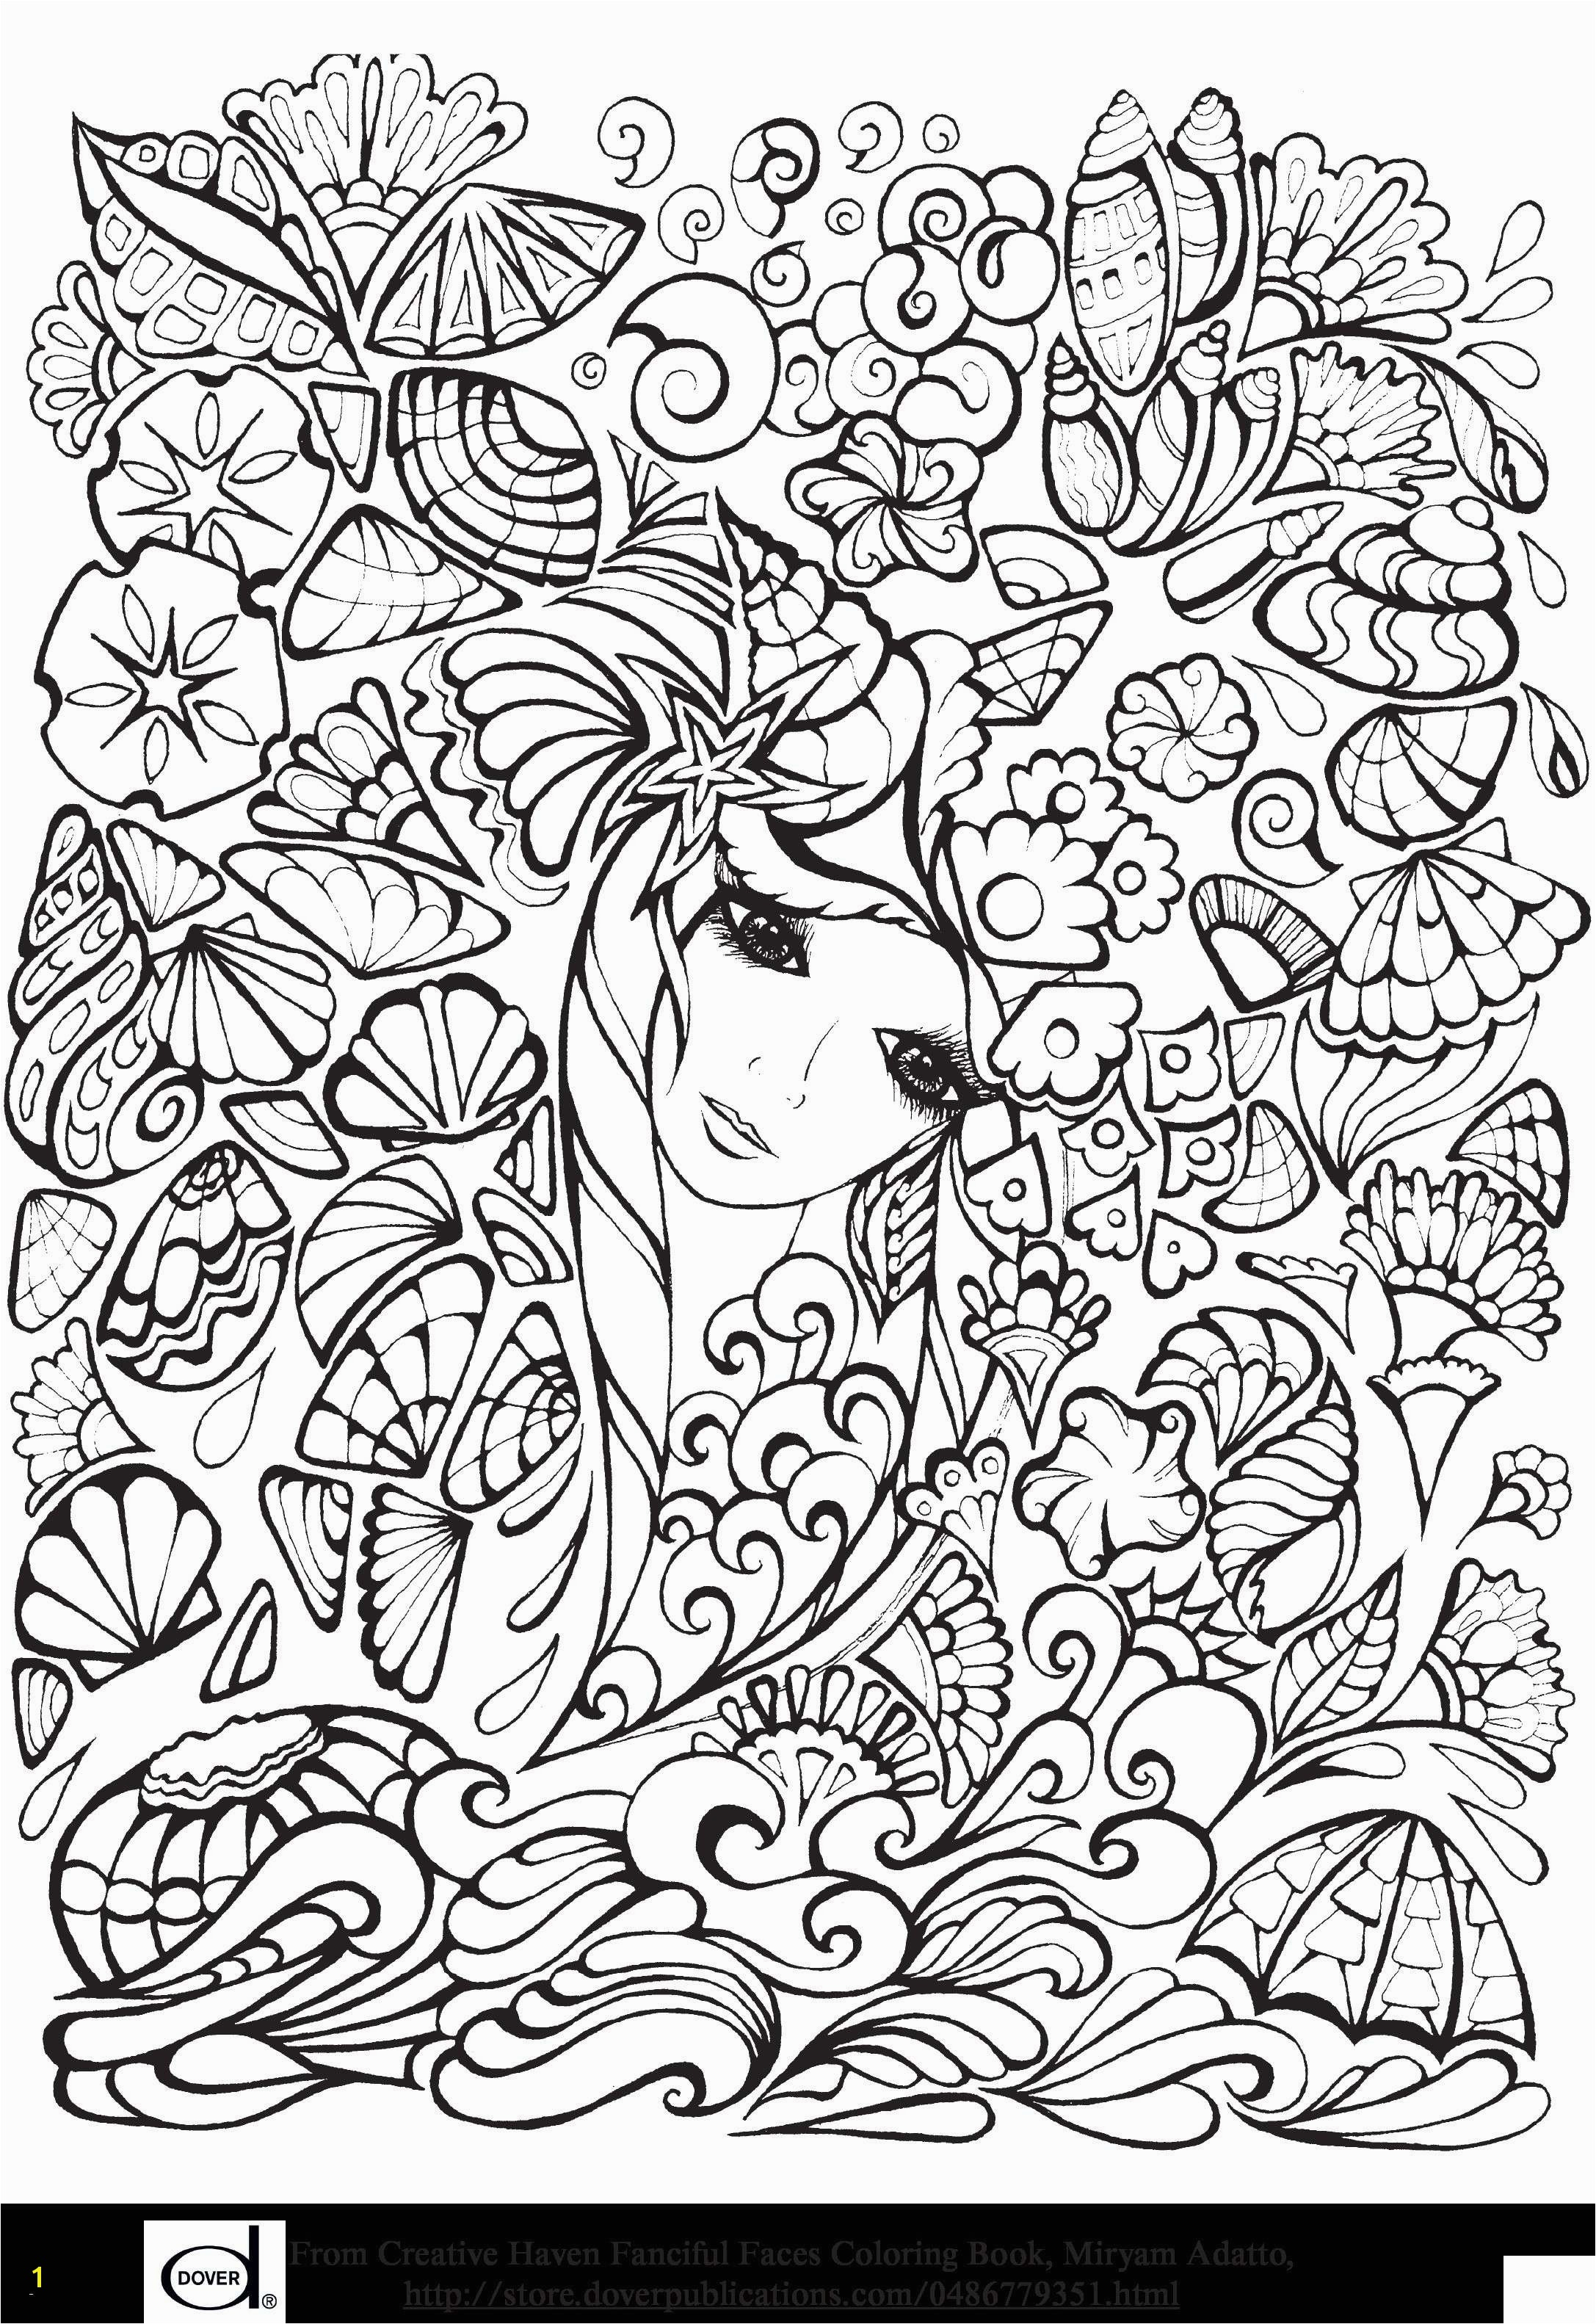 Girl Coloring Pages Awesome Witch Coloring Page Inspirational Crayola Pages 0d Coloring Page